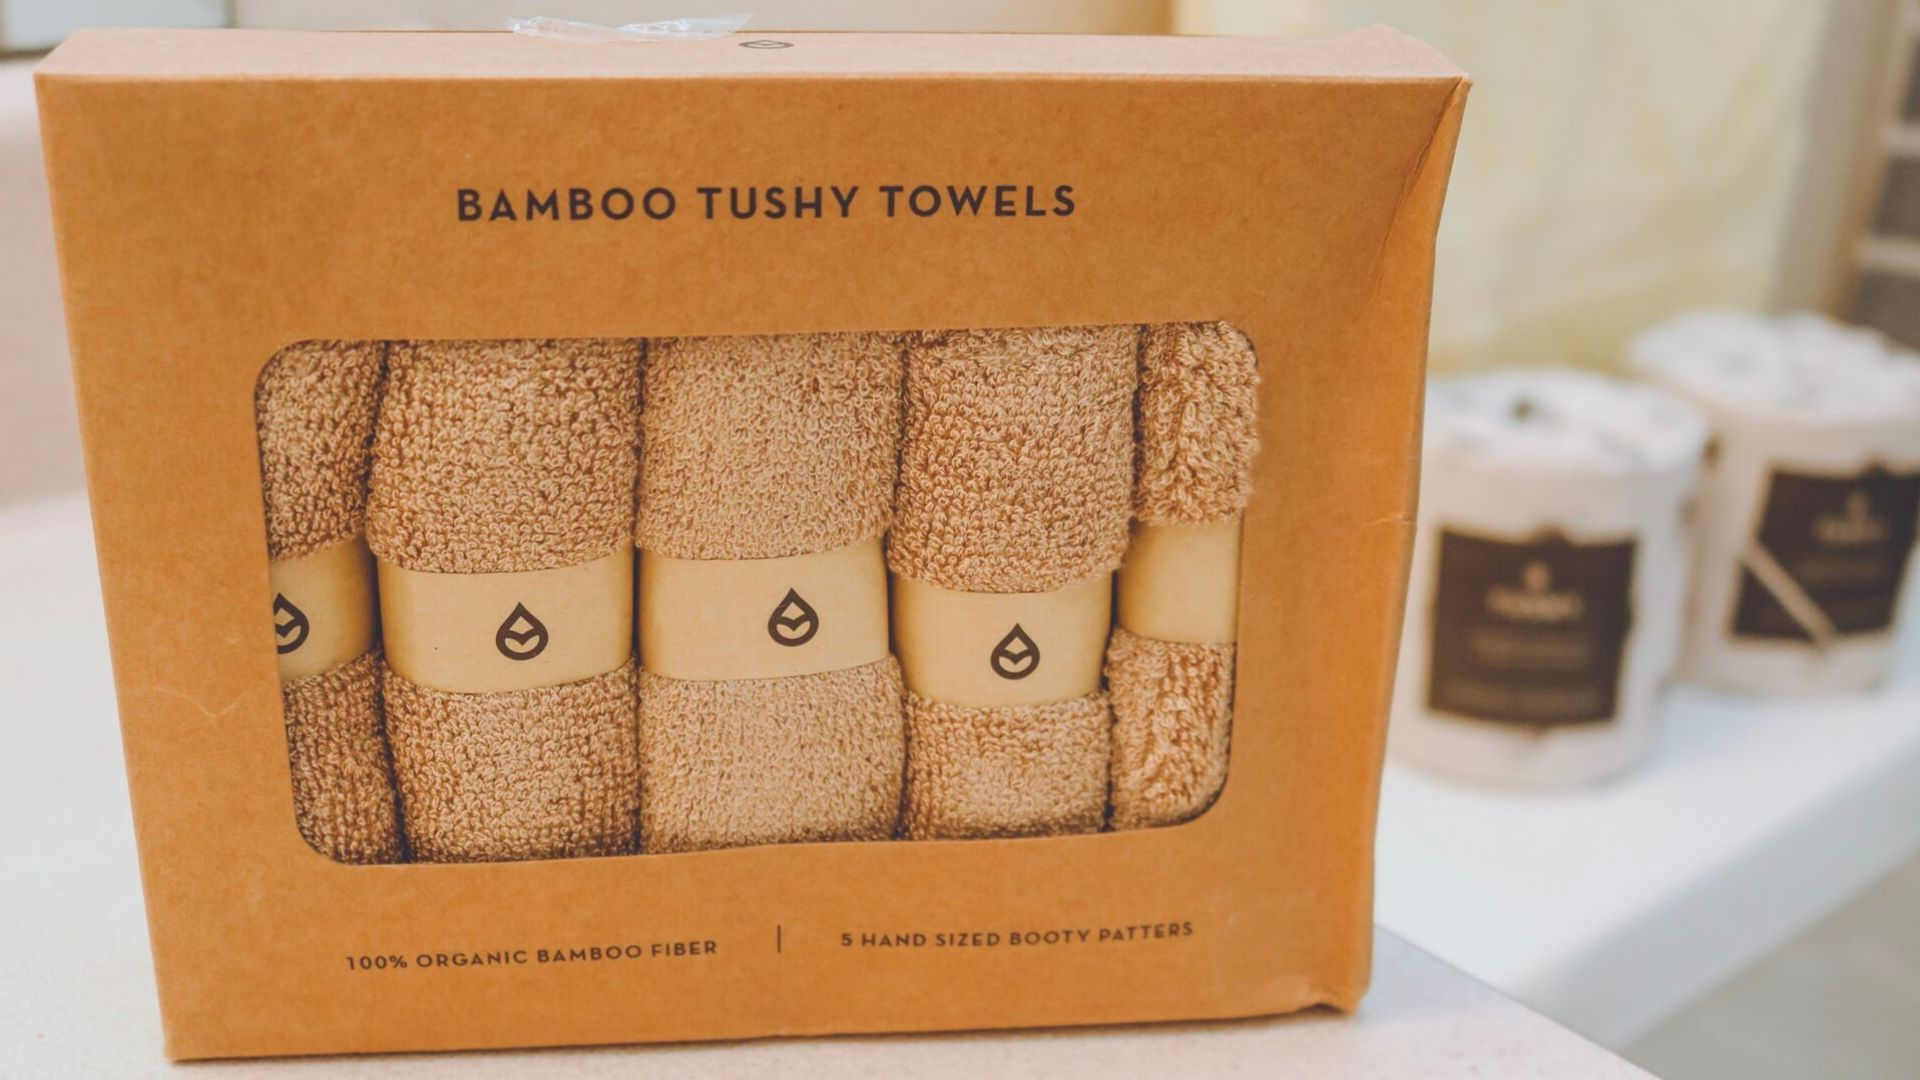 Bamboo Tushy Towels